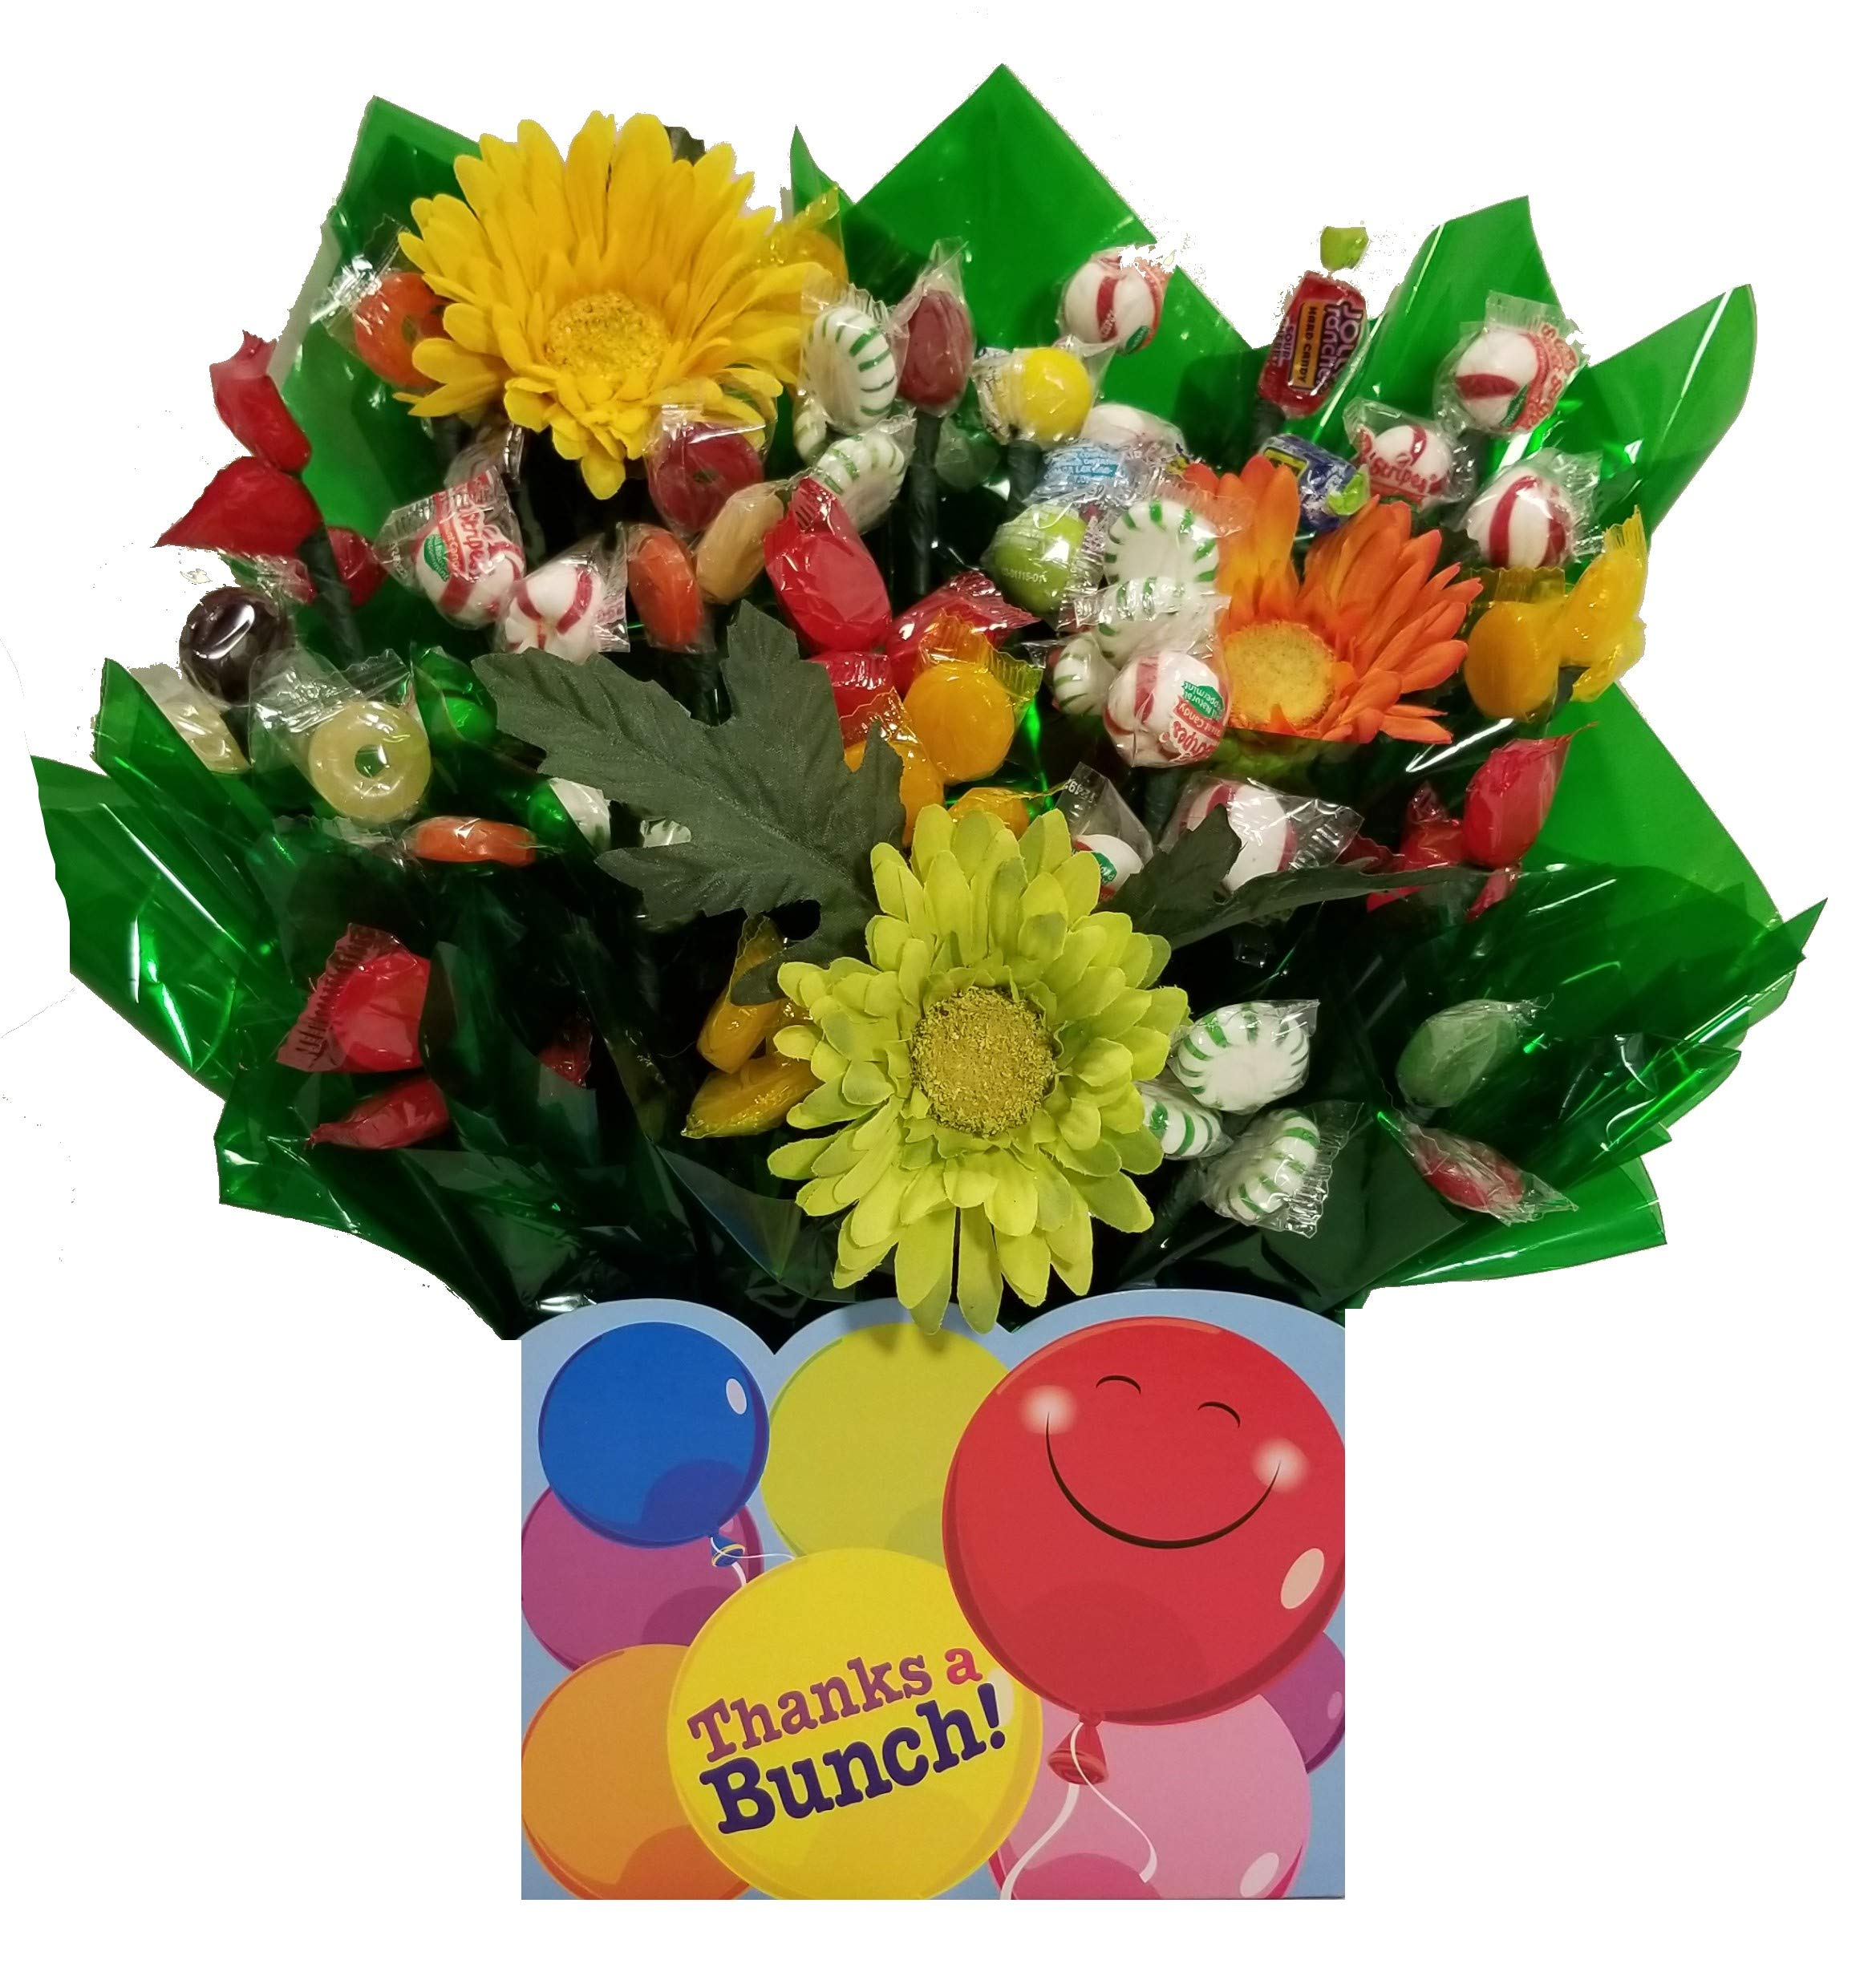 Thanks A Bunch Gift Box with Hard Candy Bouquet - Great as a Thank You gift or for any occasion (Many OPTIONS available) by So Sweet of You